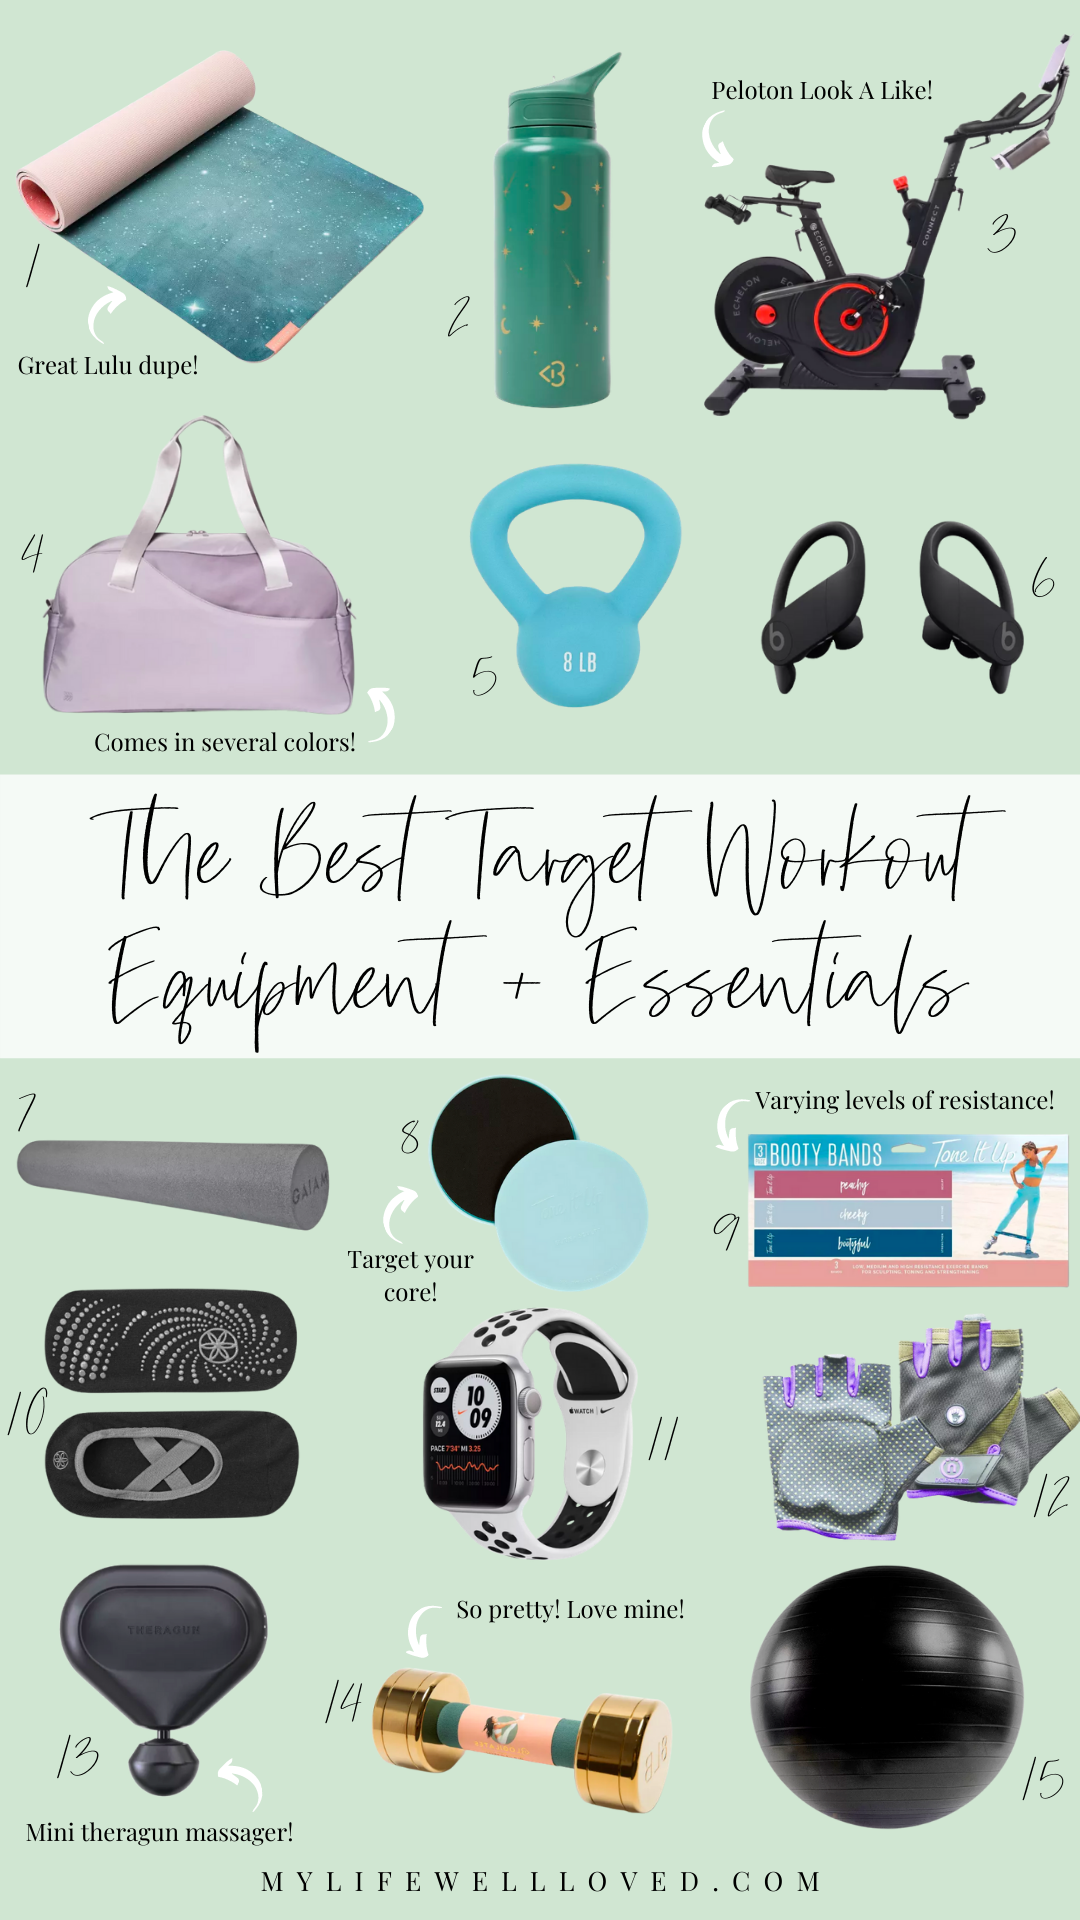 At Home Fitness: The Best Target Workout Equipment + Essentials by Alabama Health + Fitness blogger, Heather Brown // My Life Well Loved